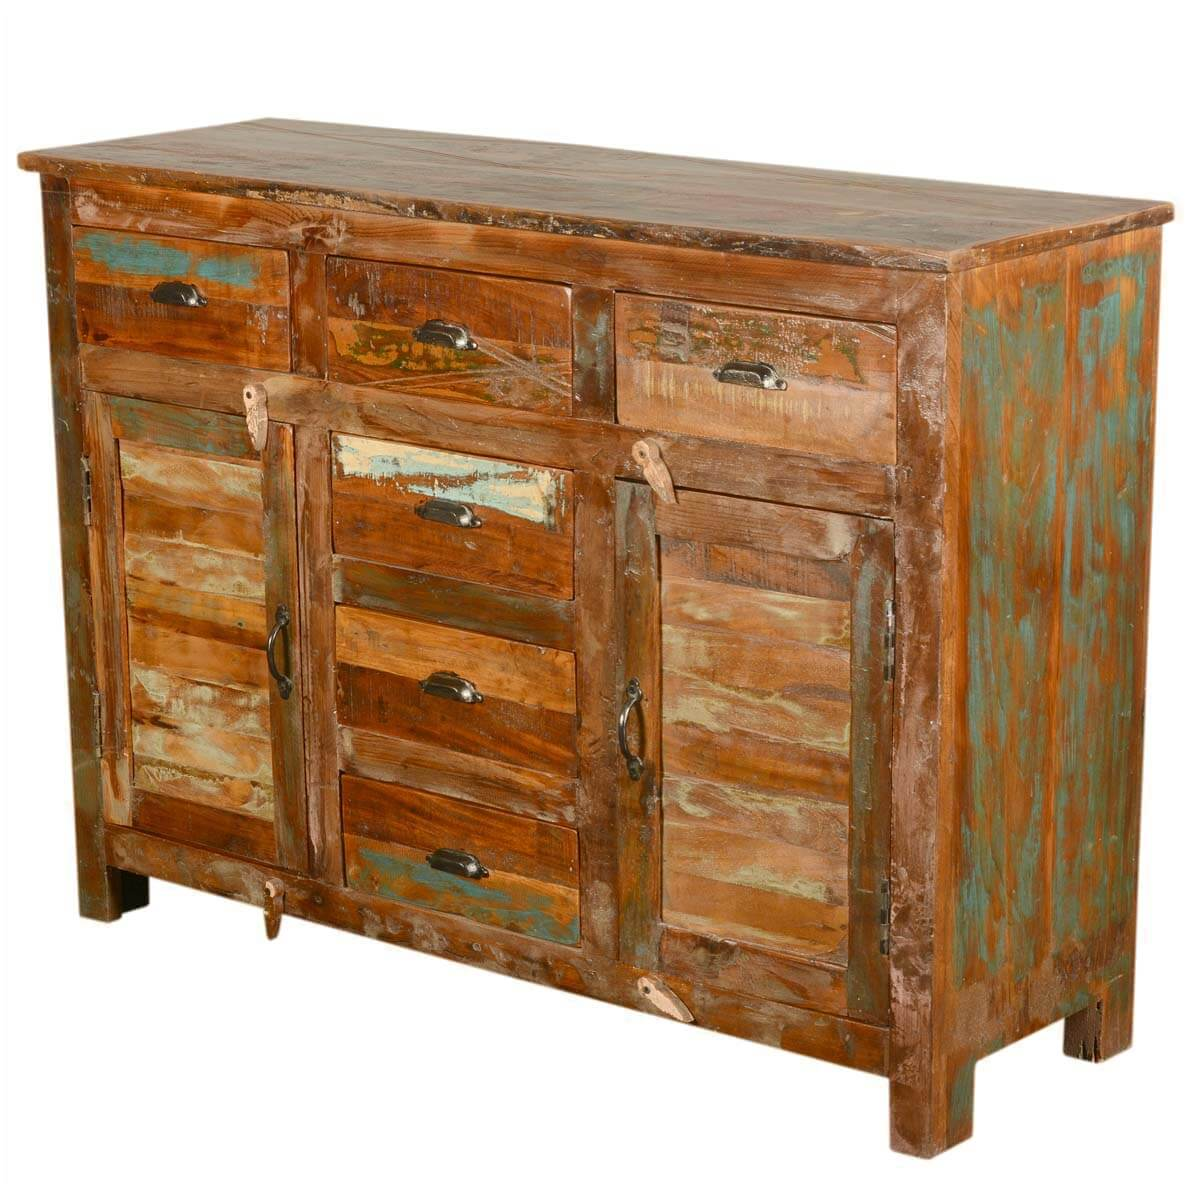 Wood Elevation For Buffet : Pedro rustic reclaimed wood drawer sideboard